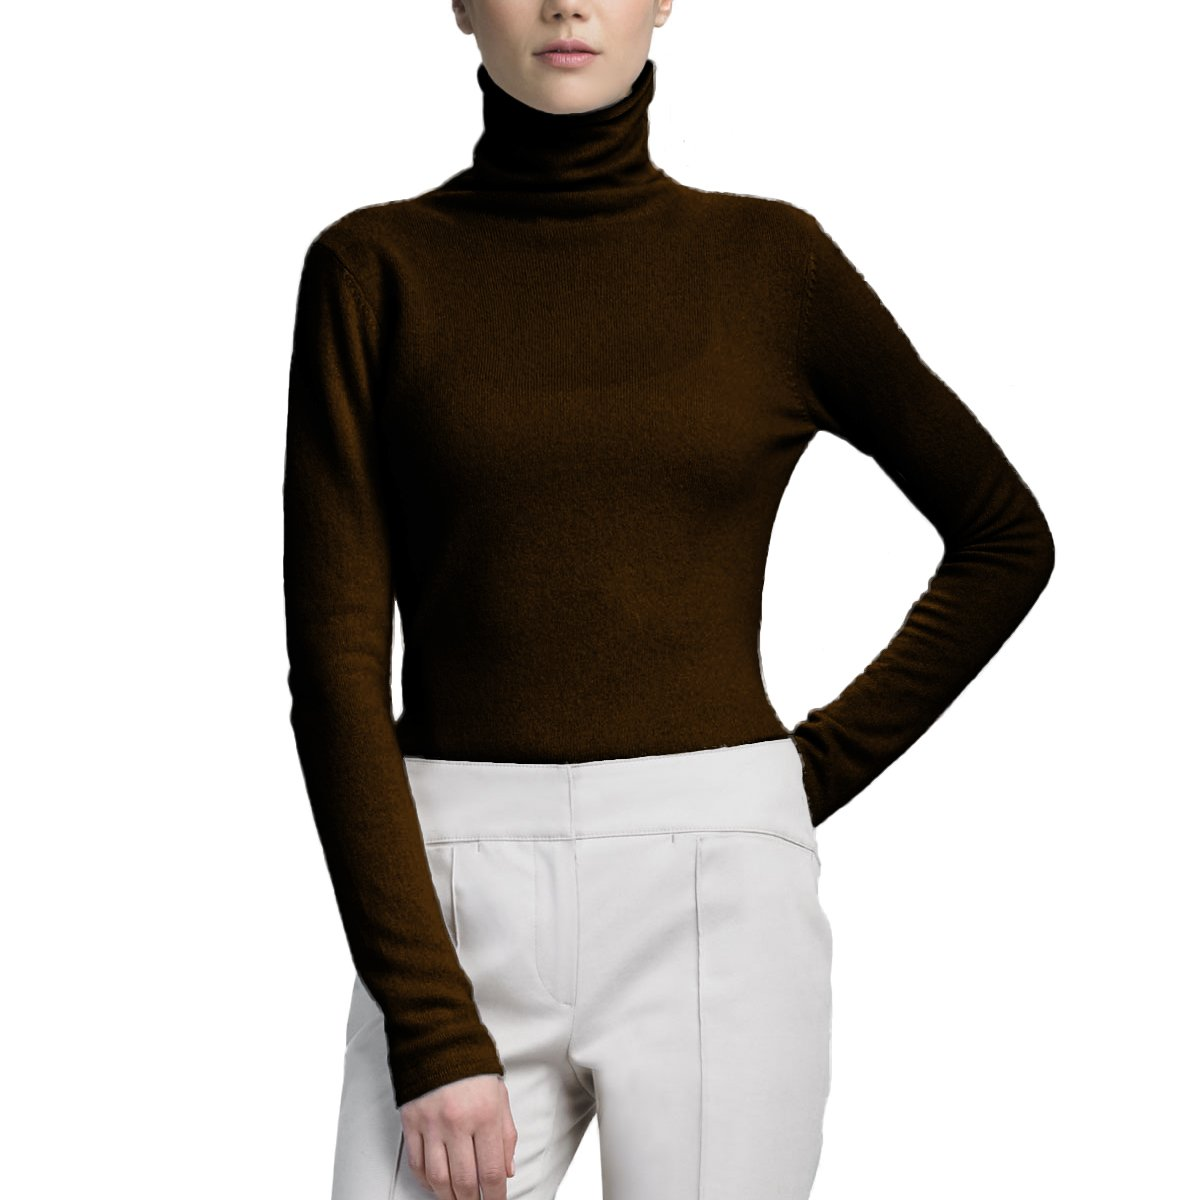 Parisbonbon Women's 100% Cashmere Turtleneck Tops Sweater Color Chocolate Size 1X